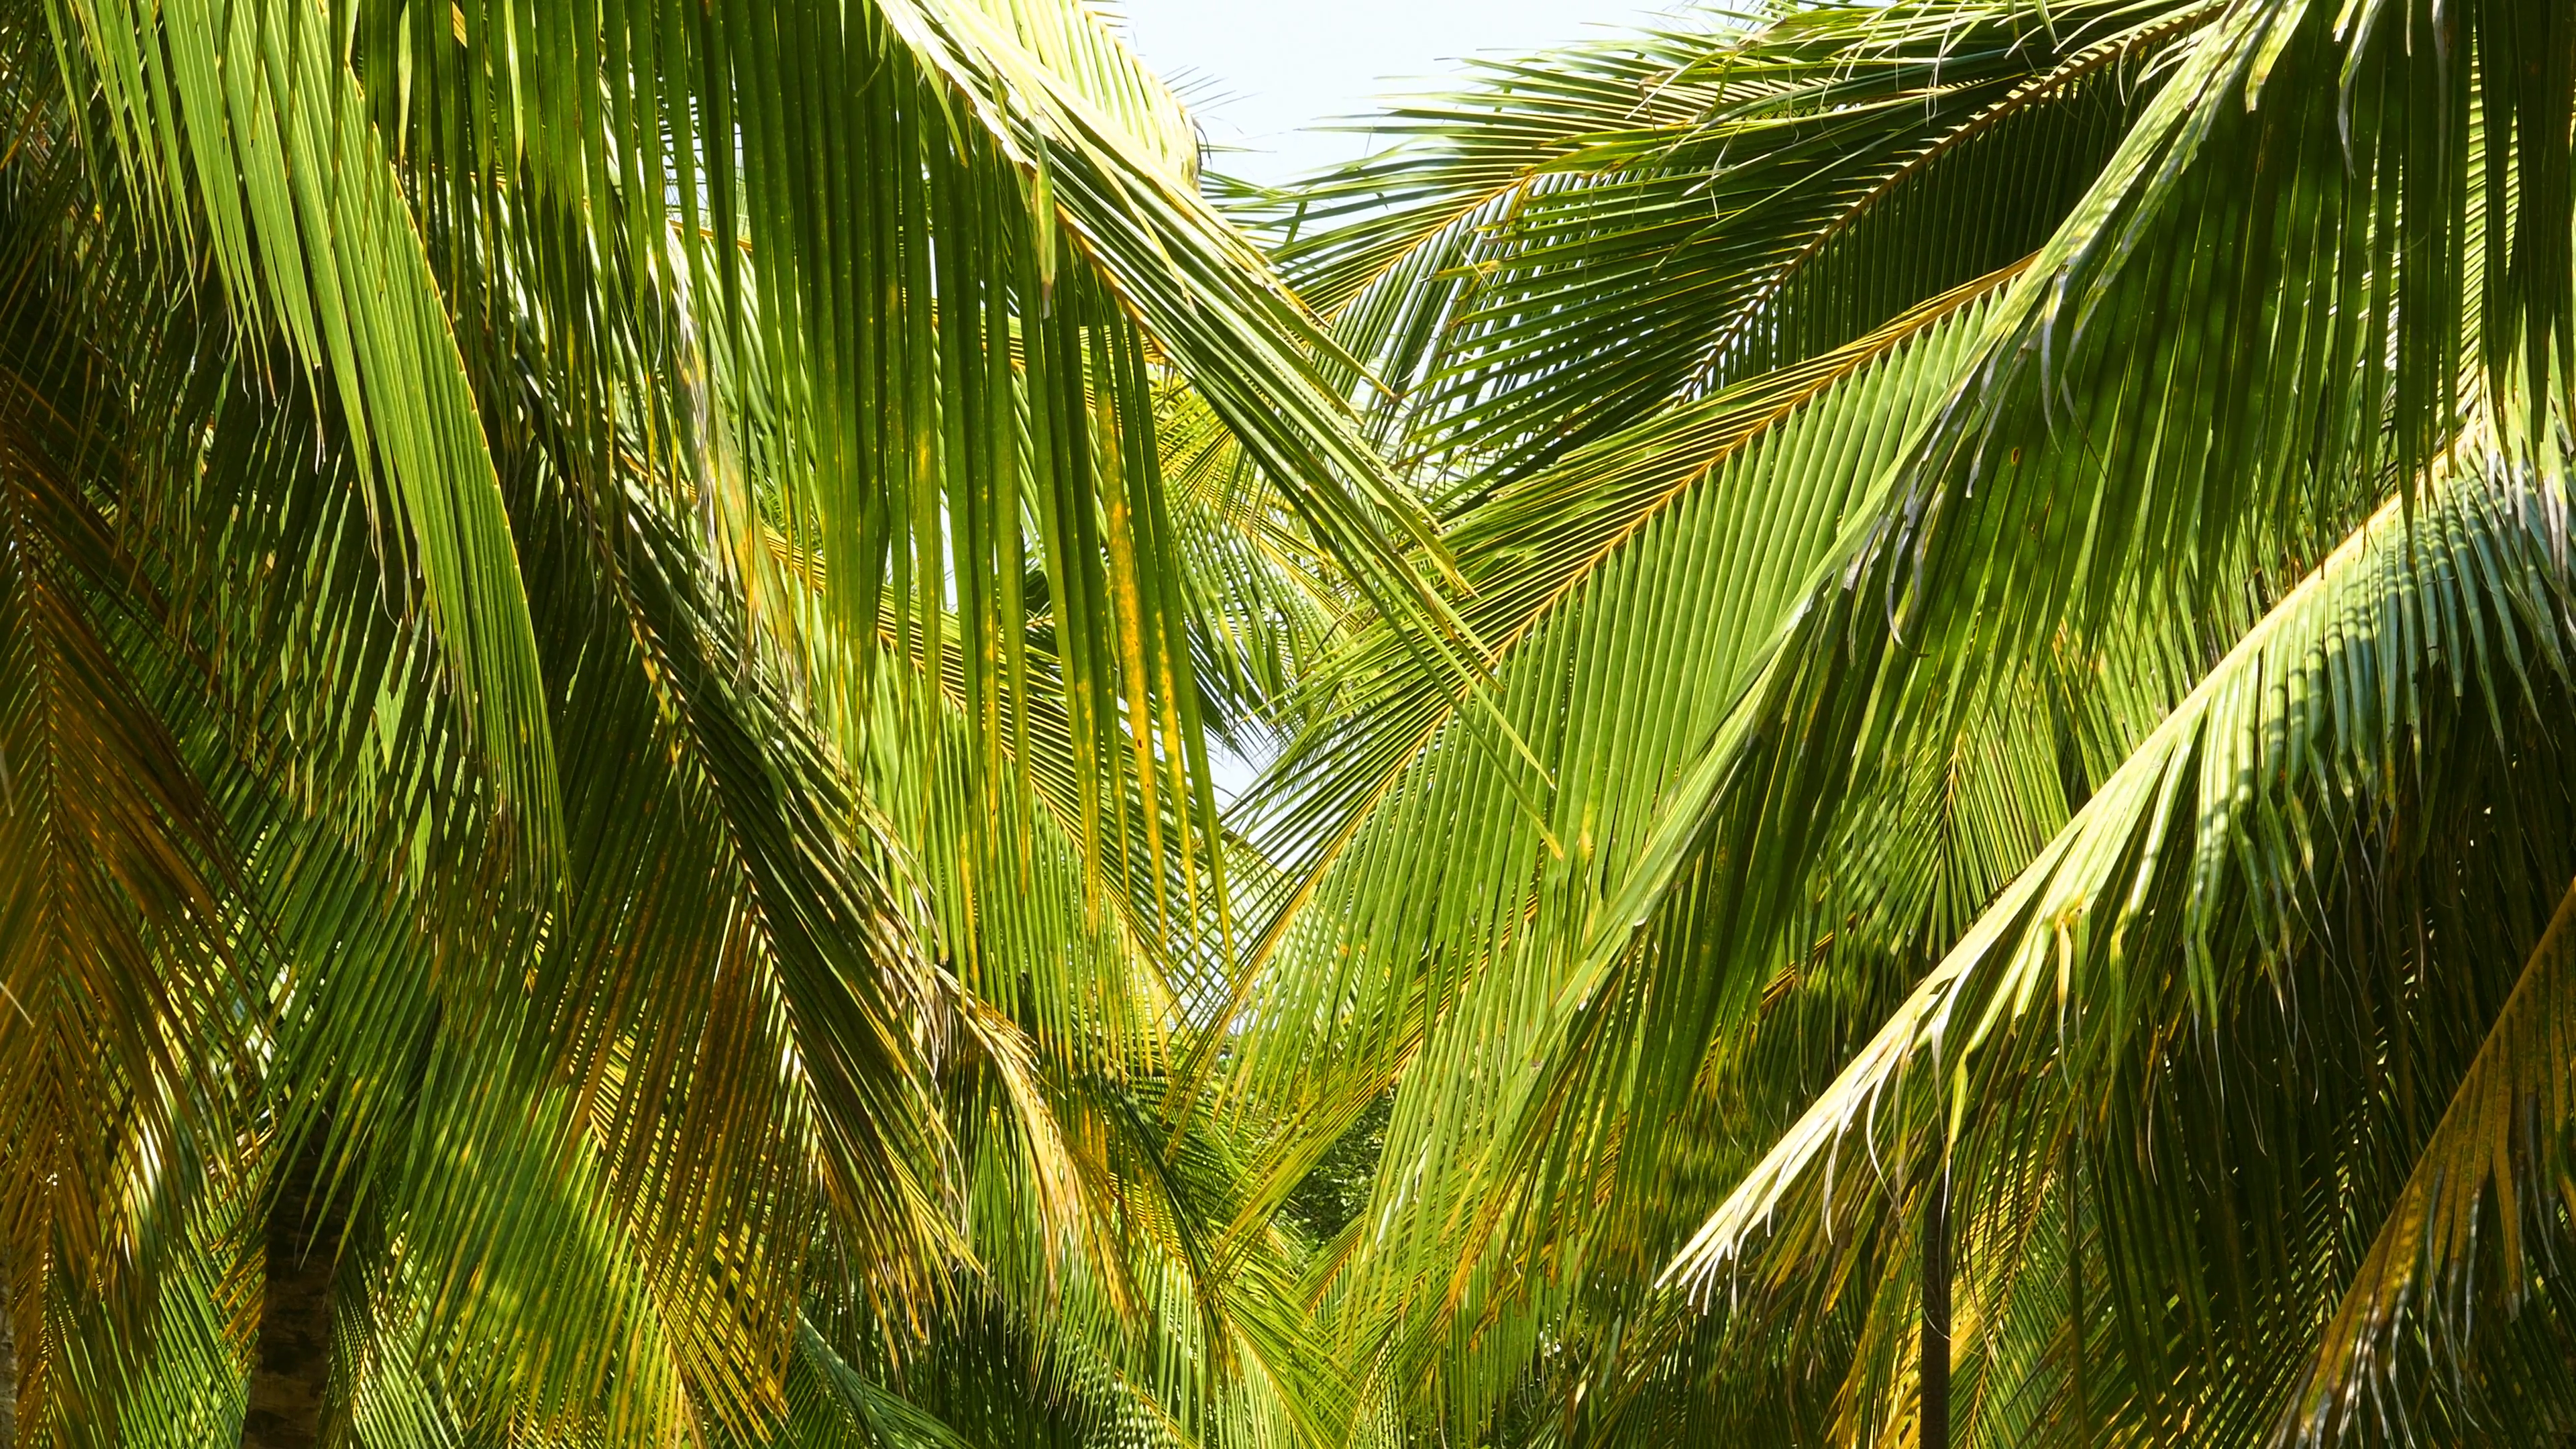 coconut palm leaves 4k Stock Video Footage - Videoblocks